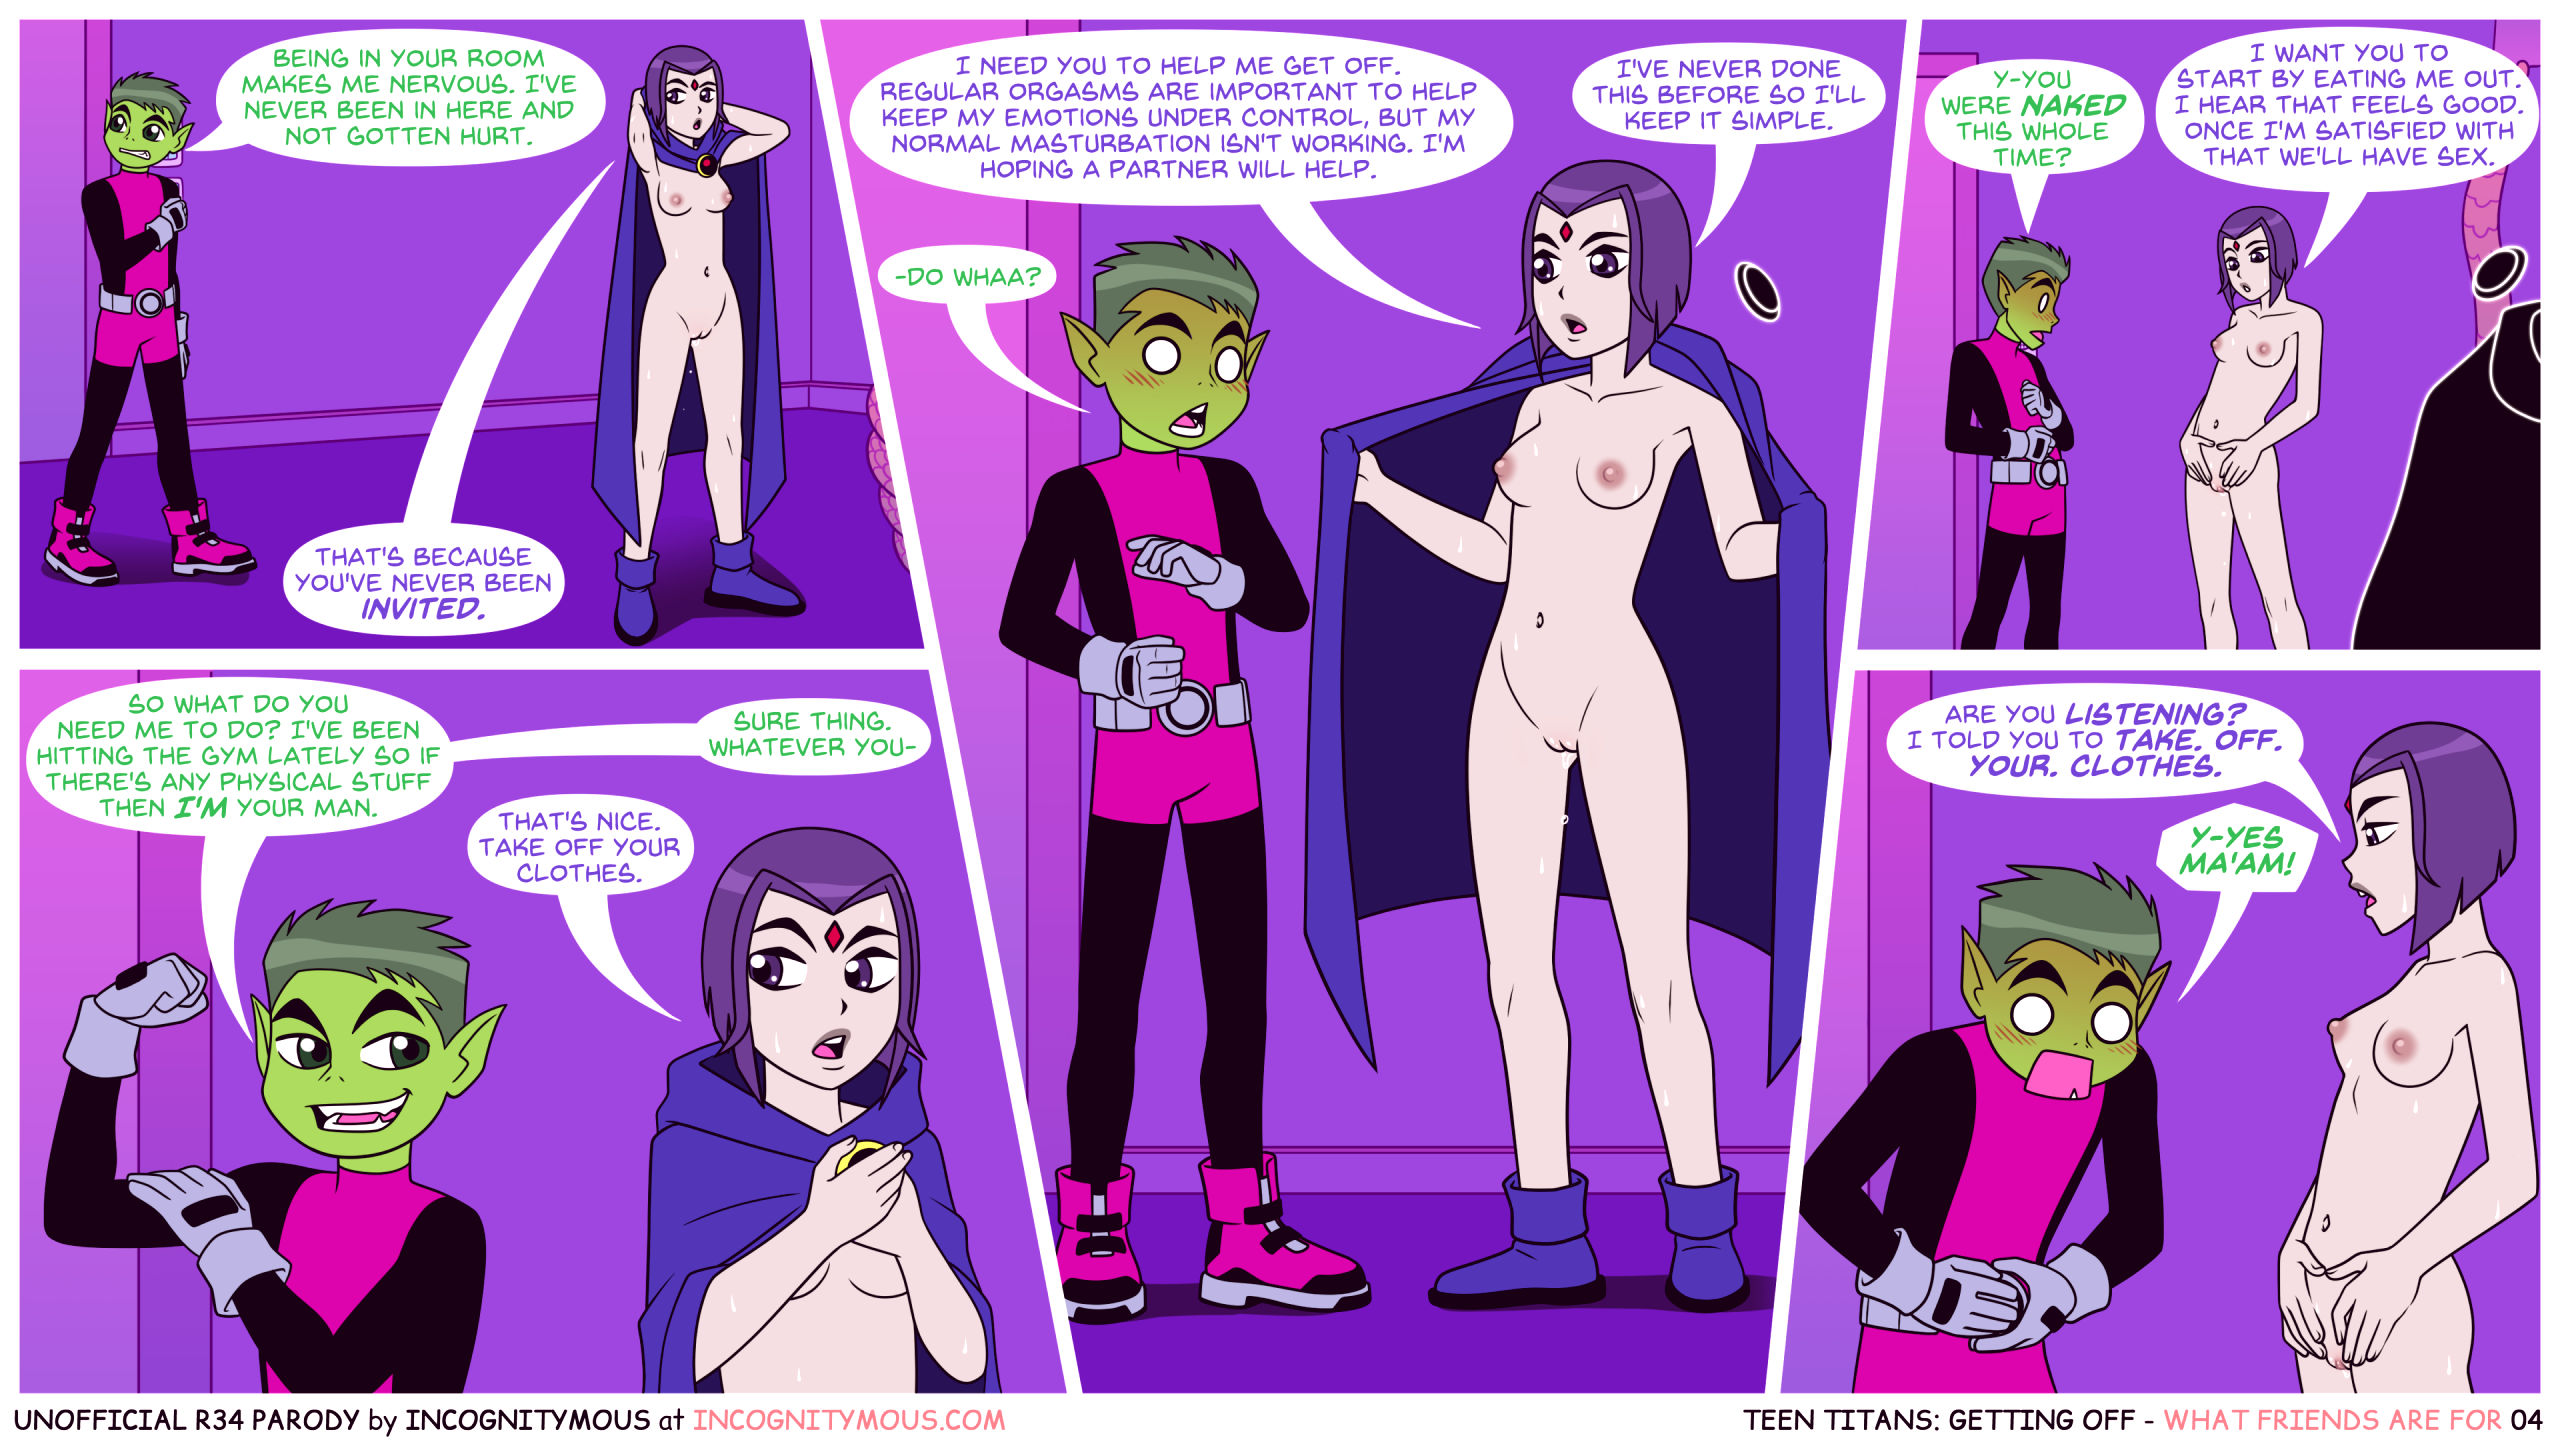 Teen titans getting off porn comic picture 4